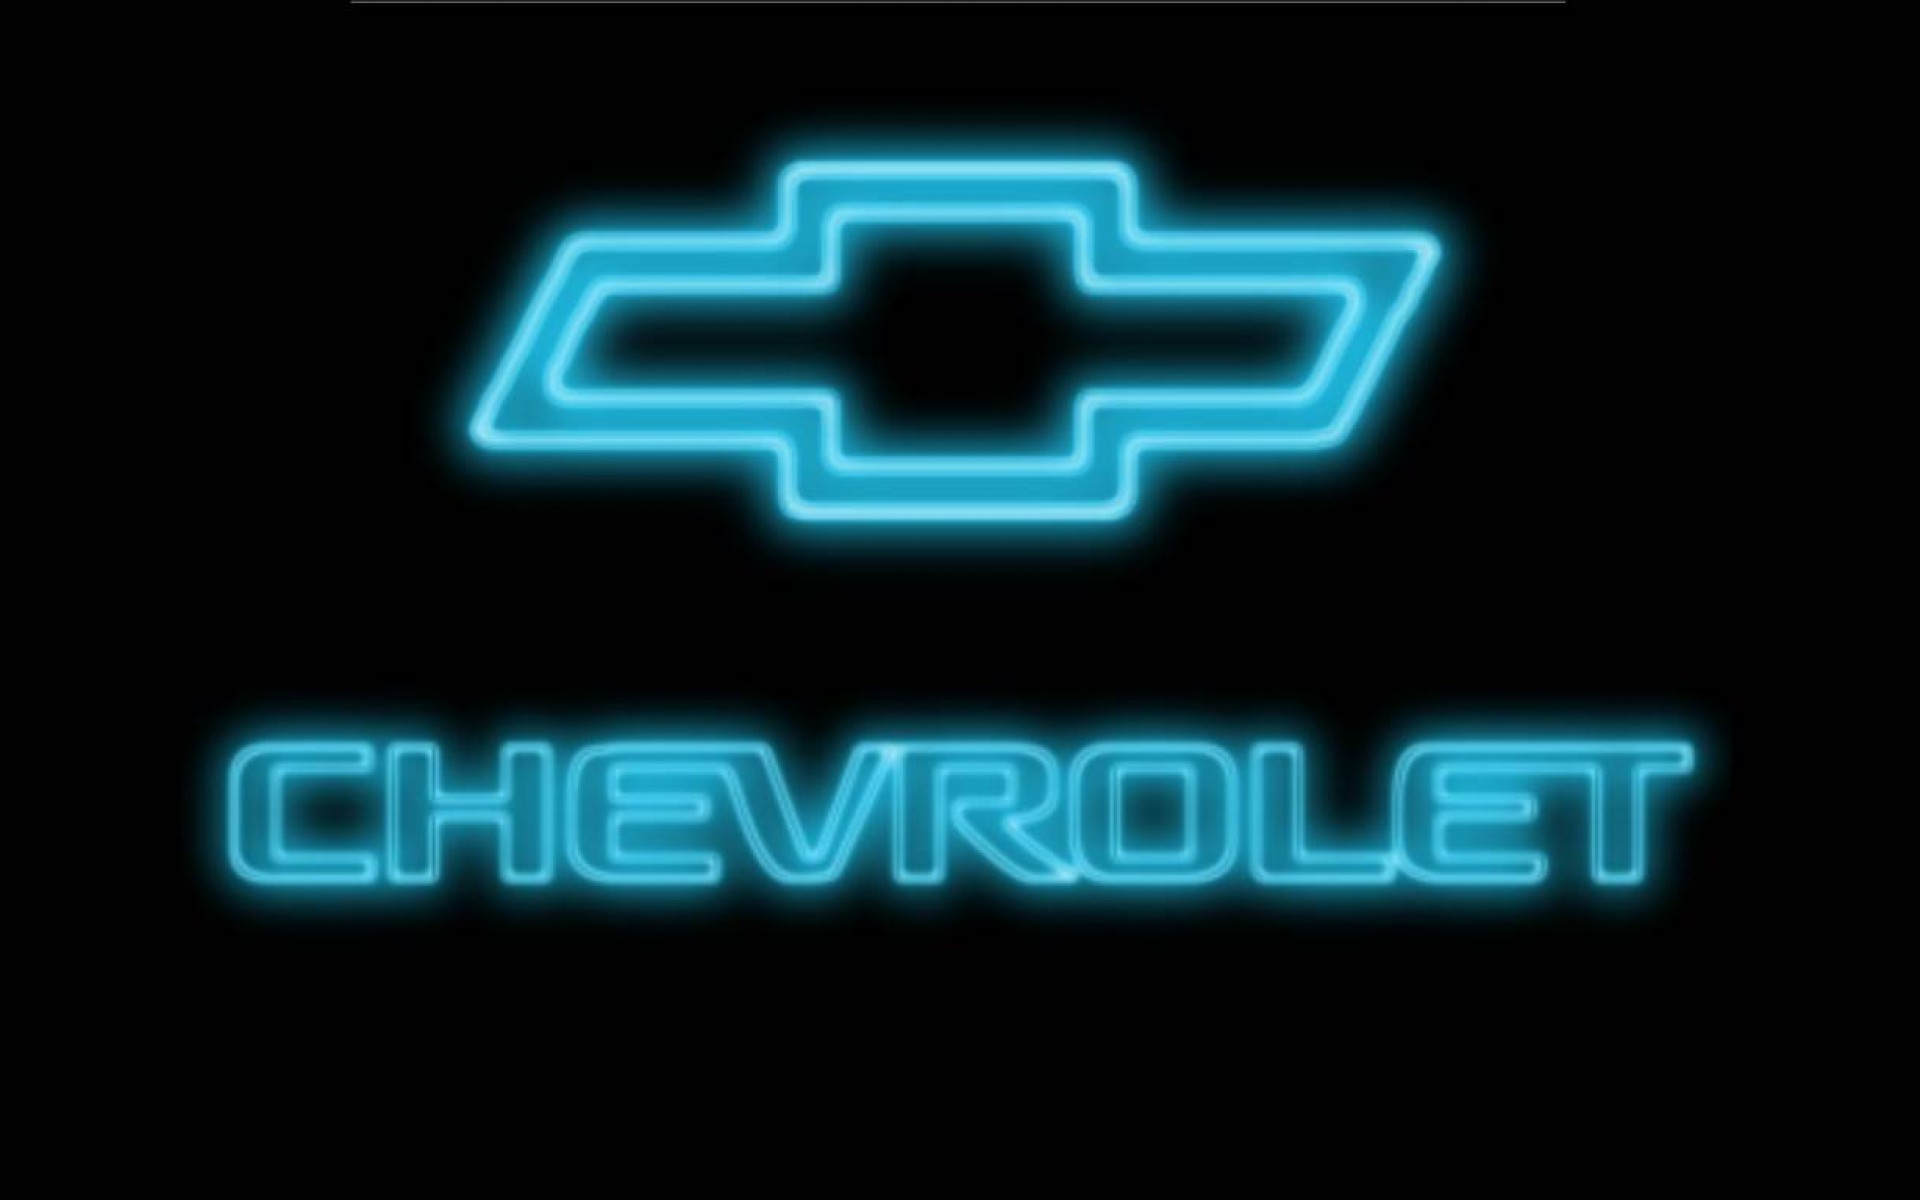 Chevy Logo Wallpaper iPhone. Neon Blue Chevy Logo